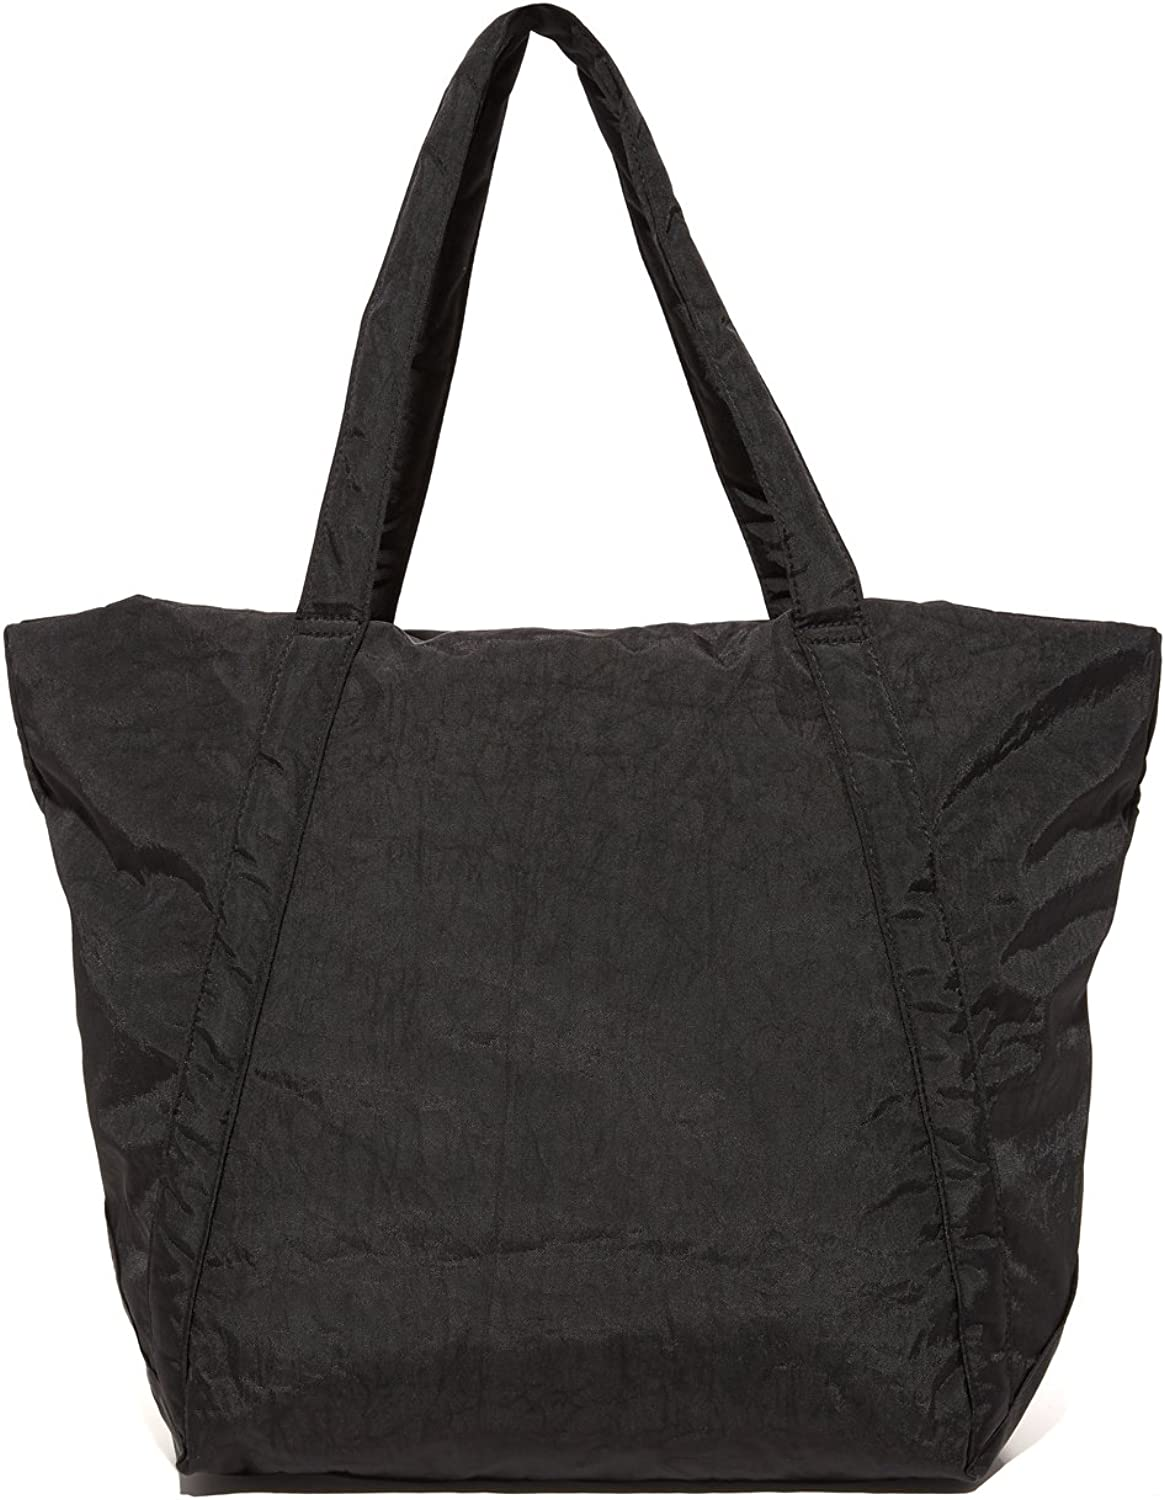 BAGGU Cloud Bag, Lightweight Nylon Packable Tote for Travel or Everyday Use